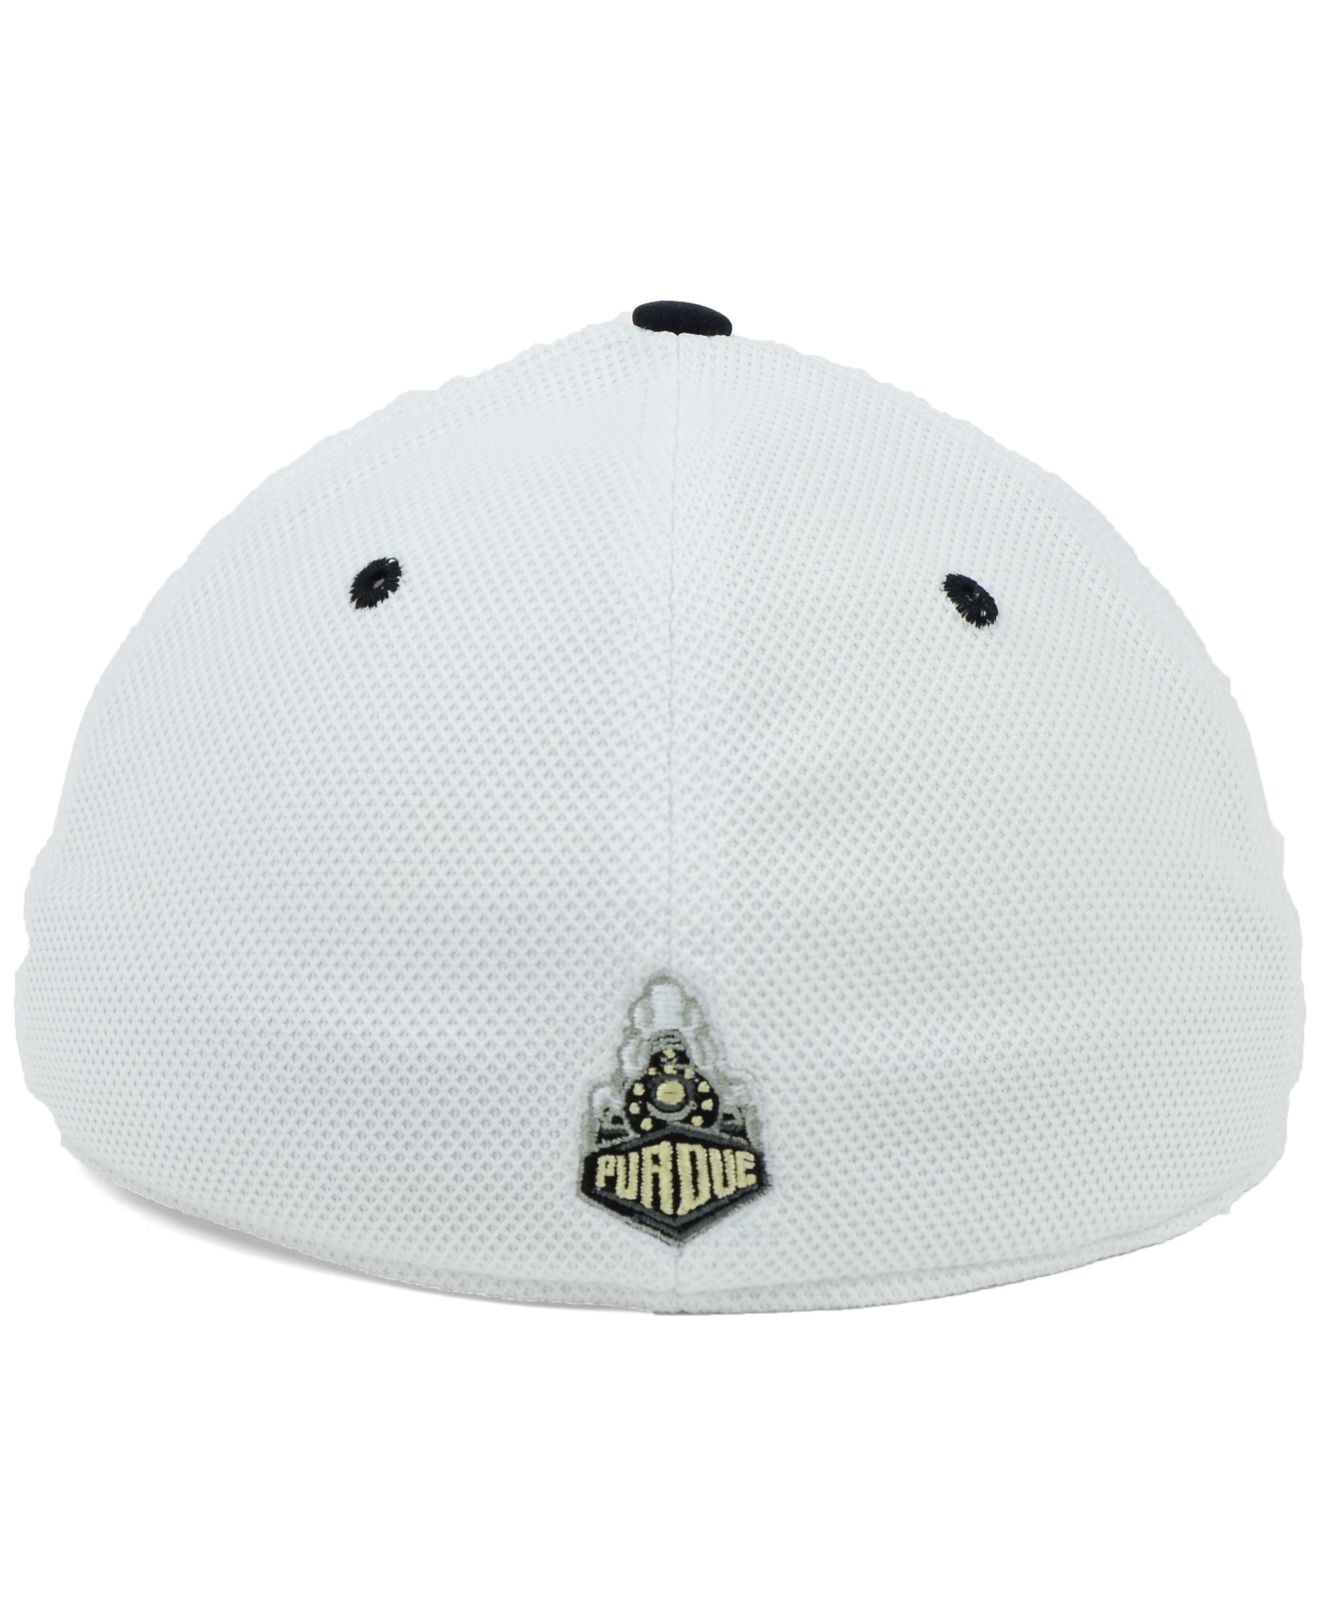 97fd43ad920 Lyst - Nike Purdue Boilermakers Ncaa Conference Swf Cap in White for Men